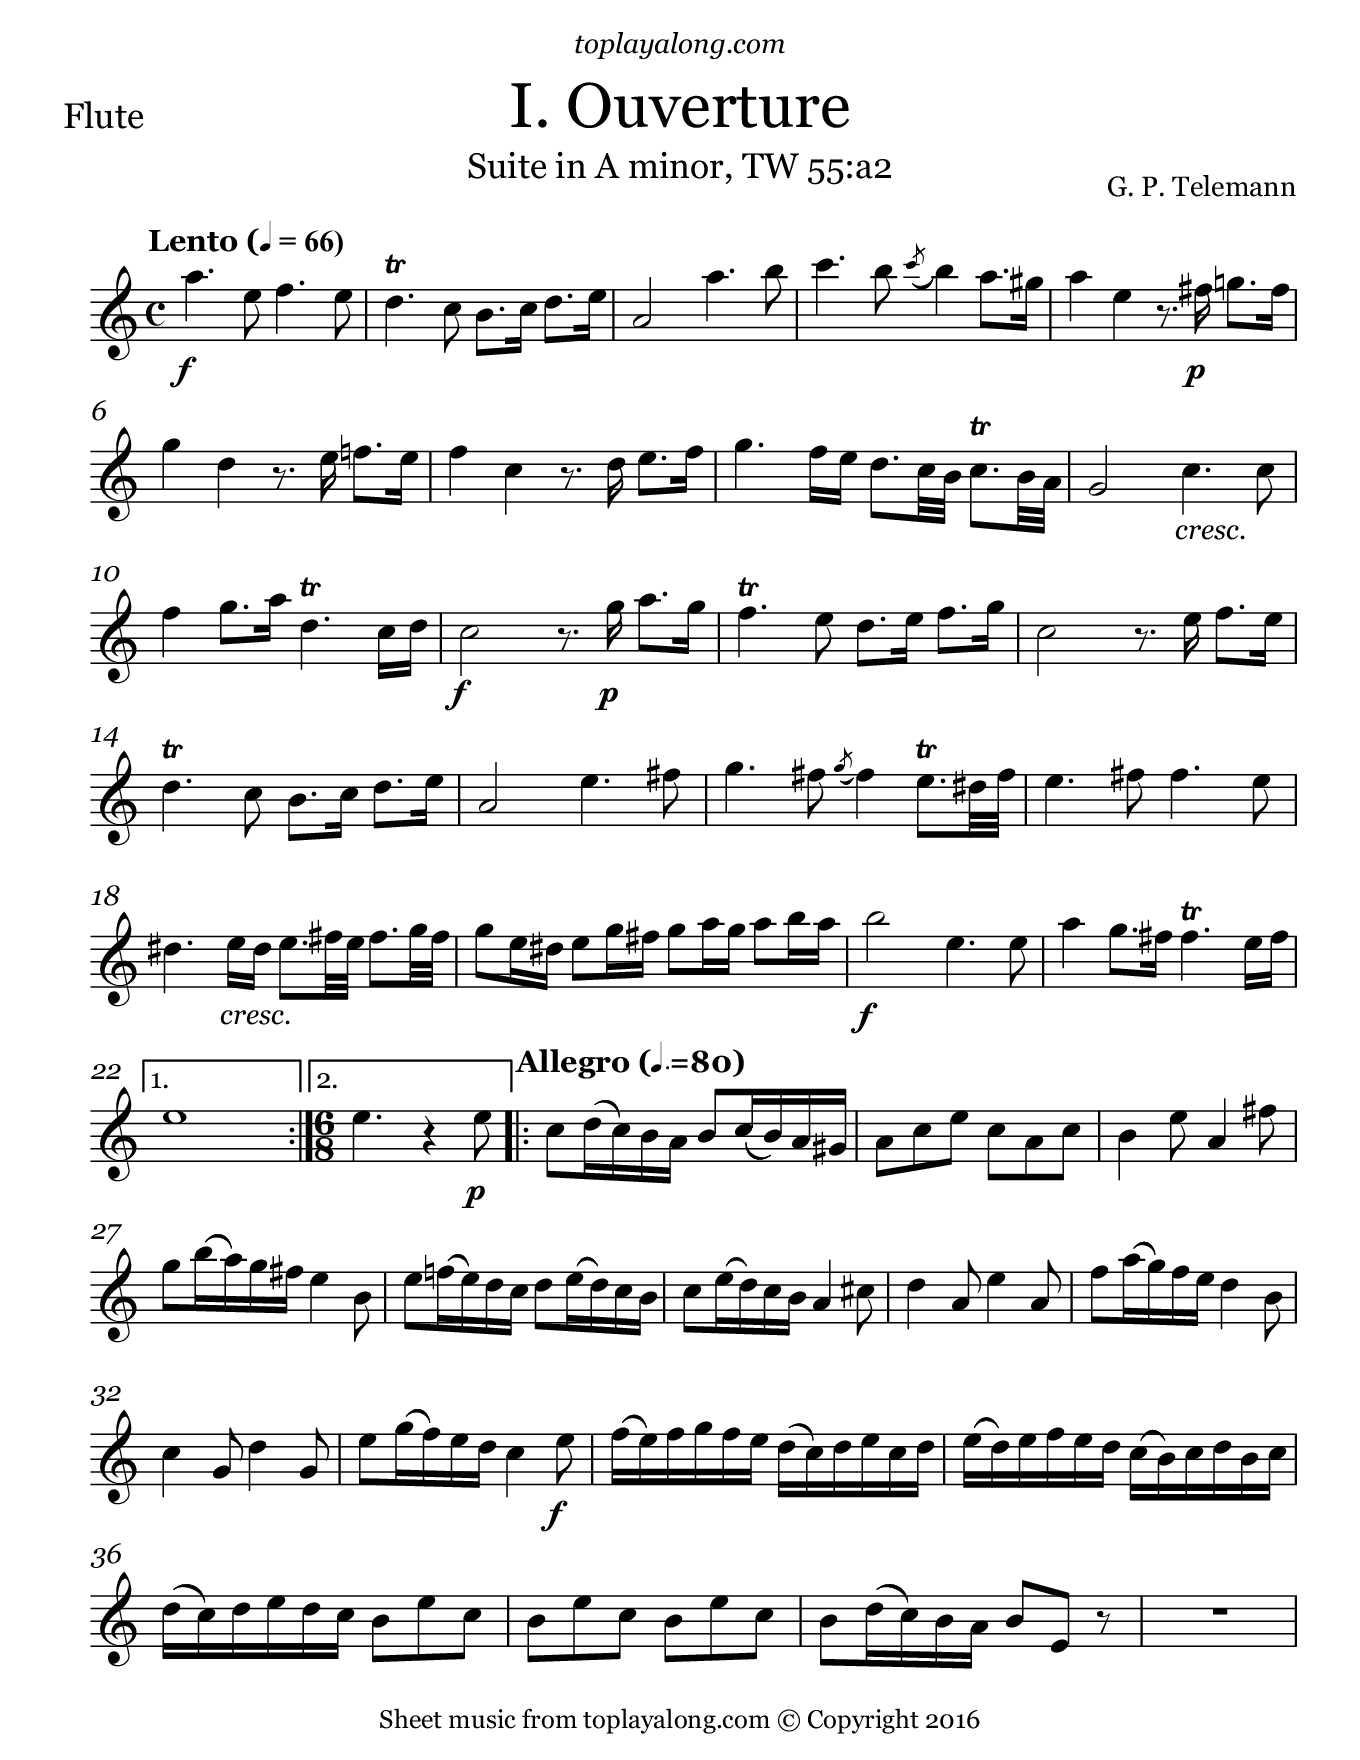 Ouverture from Suite in A minor by Telemann. Sheet music for Flute, page 1.